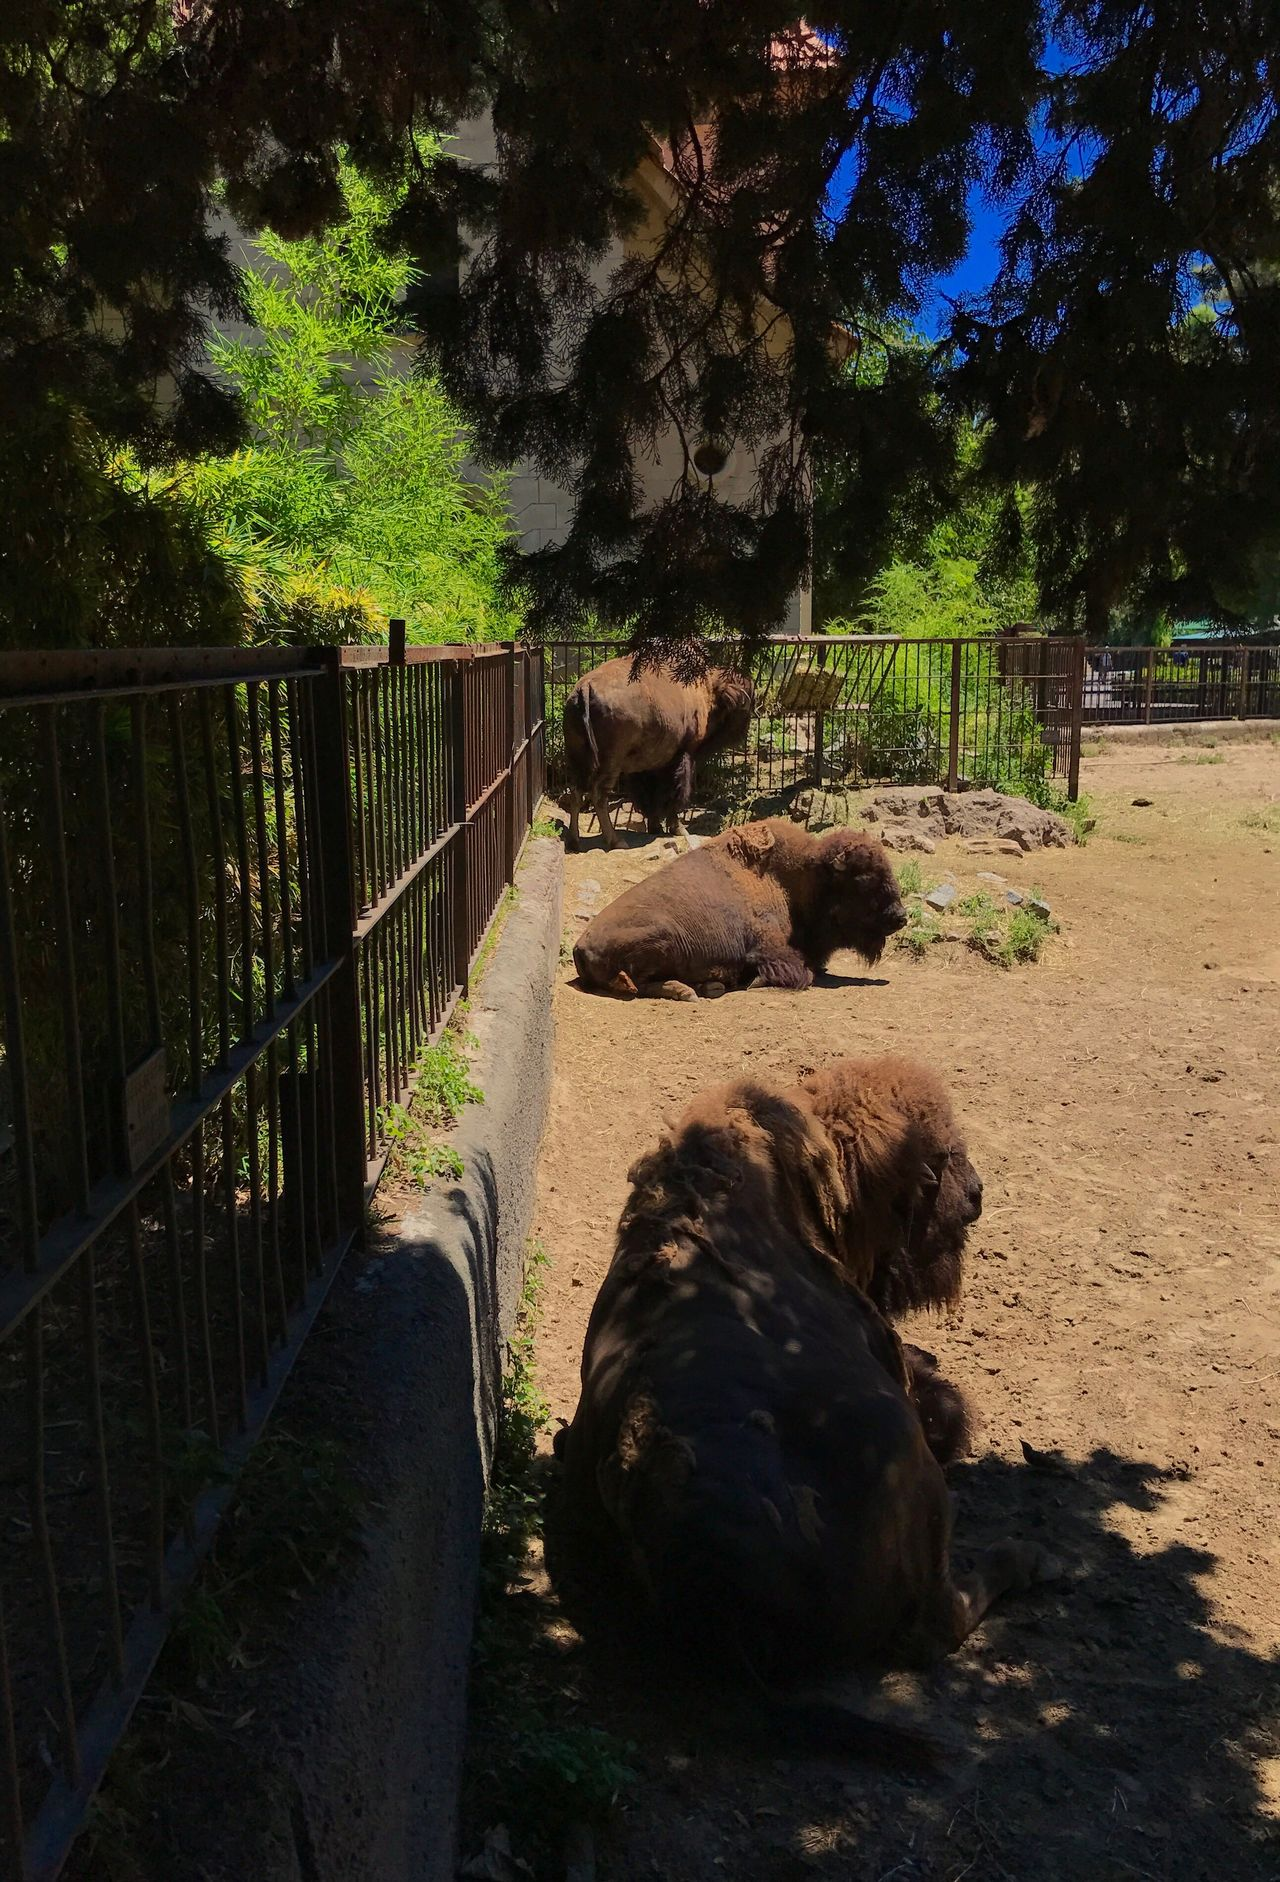 Bison Three Animals Pattern Tree Animal Themes Fence Mammal No People Nature Growth Outdoors Day Beauty In Nature Zoo Big Animal Trees Plants